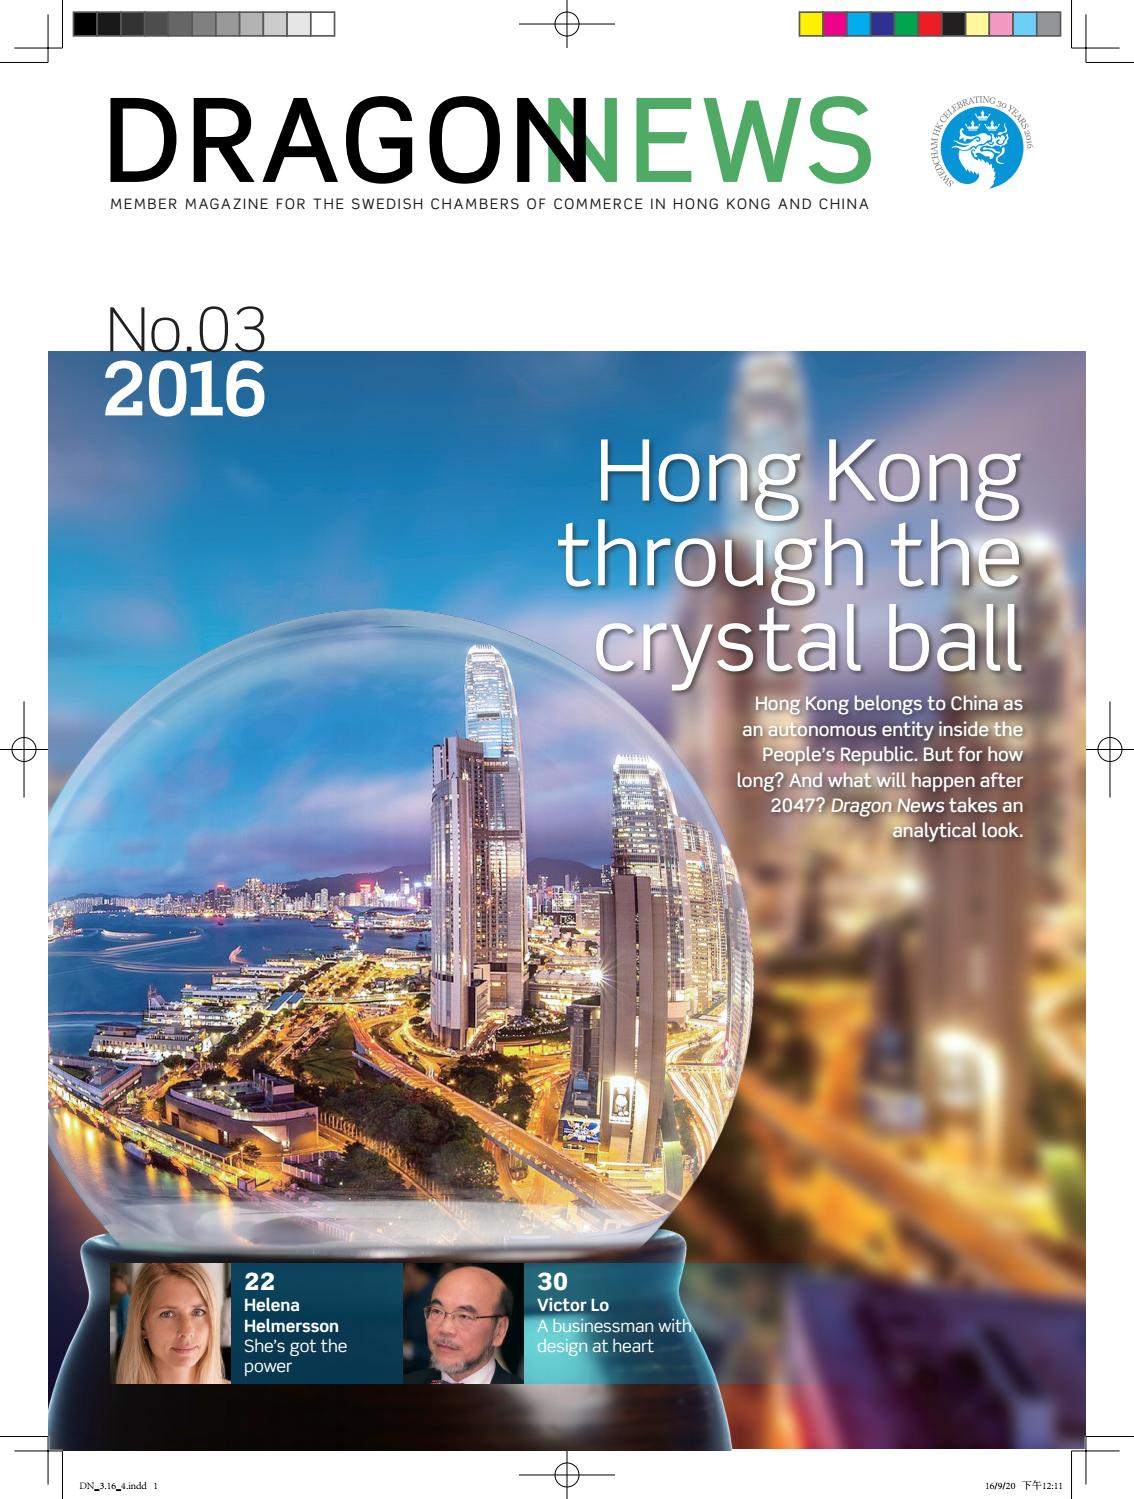 Dragon News - No.3, 2016 by Dragon News - Member magazine for Swedish  Chamber of Commerce in China and HongKong - issuu